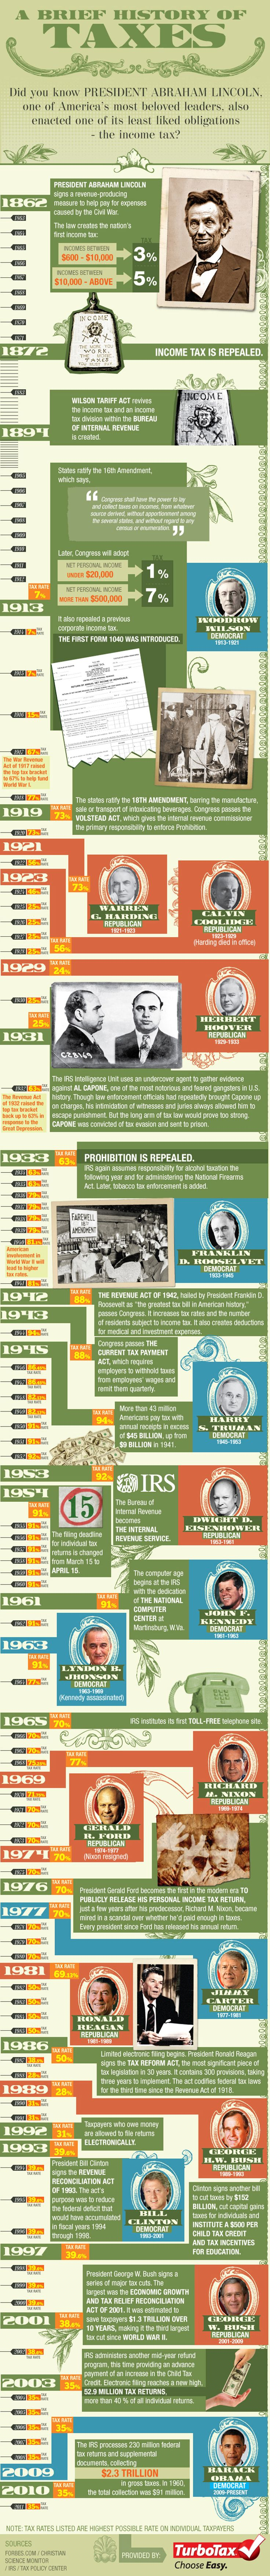 Best 25 gov tax ideas on pinterest states in us history of a brief history of income taxes infographic falaconquin